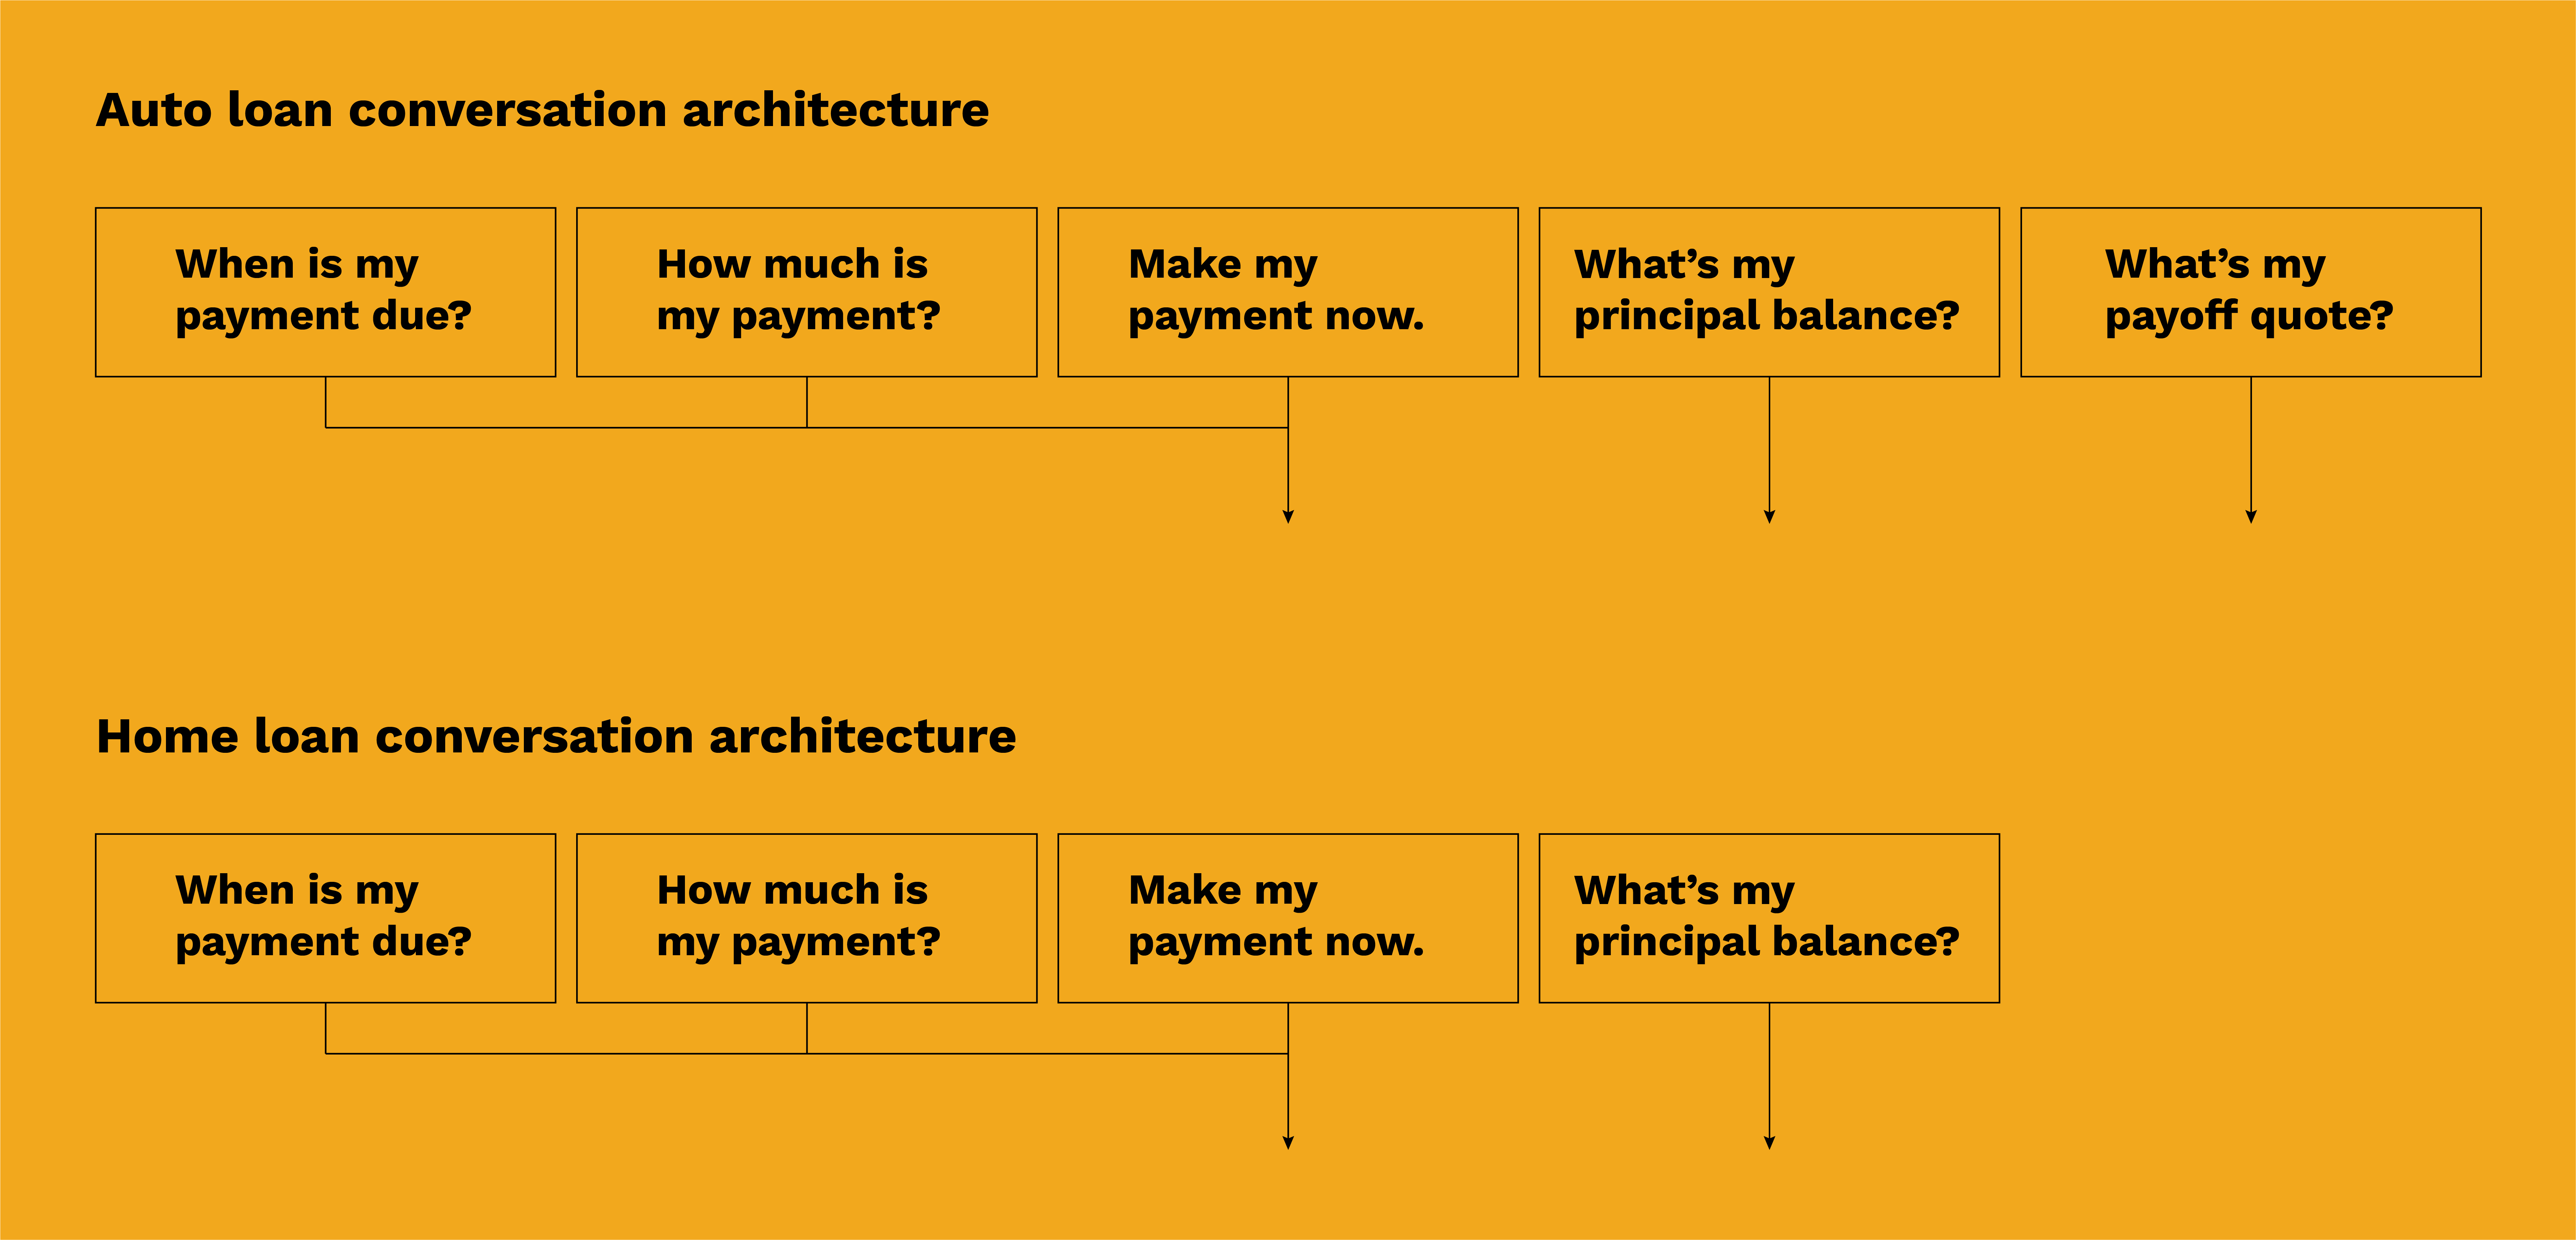 Home loans and auto loans conversation architecture, including the use cases our team was designing for.